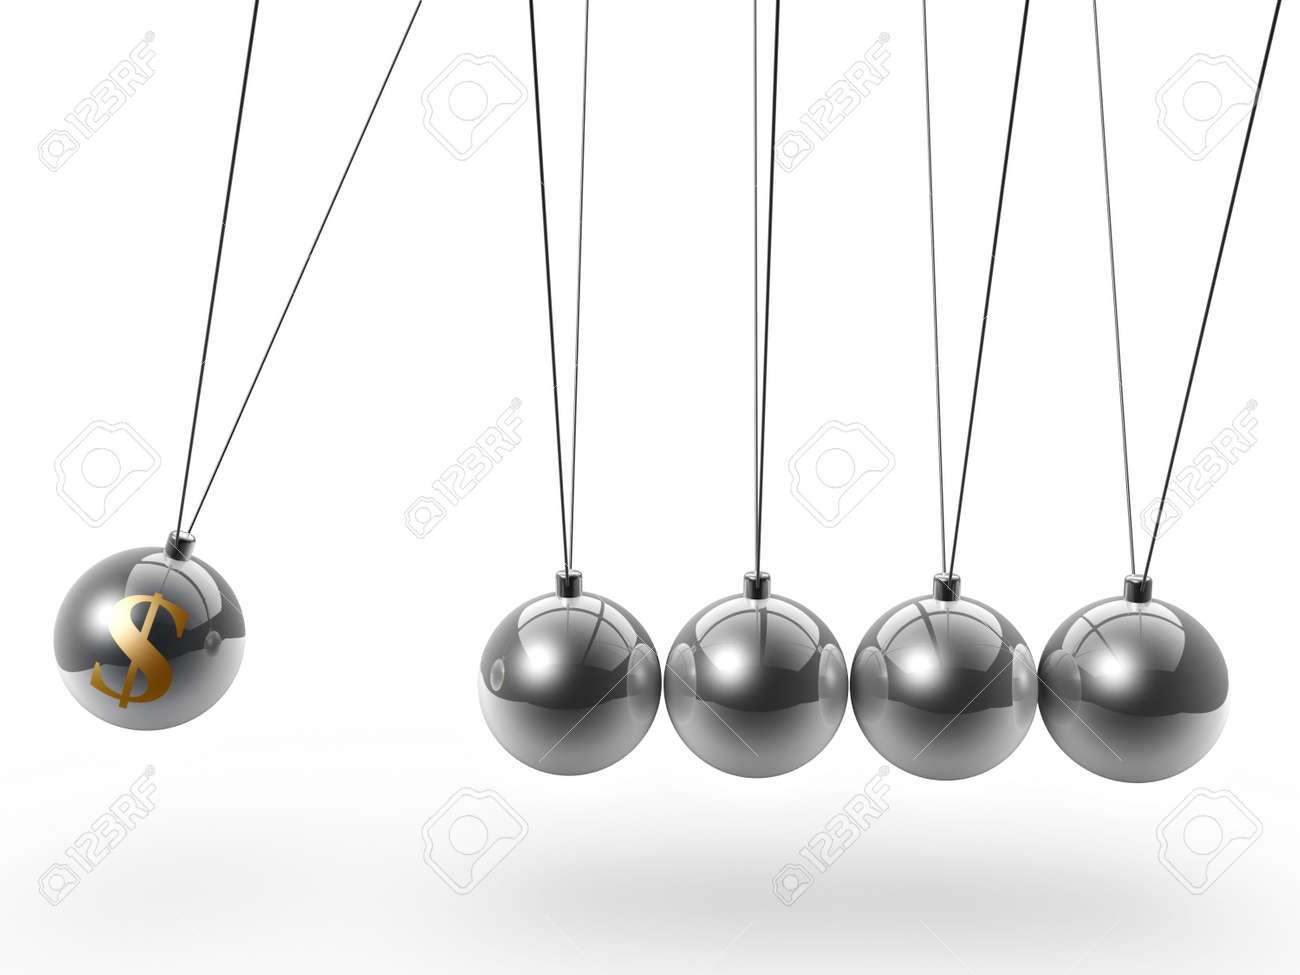 dollar symbol newton's cradle isolated on white background Stock Photo - 9579918